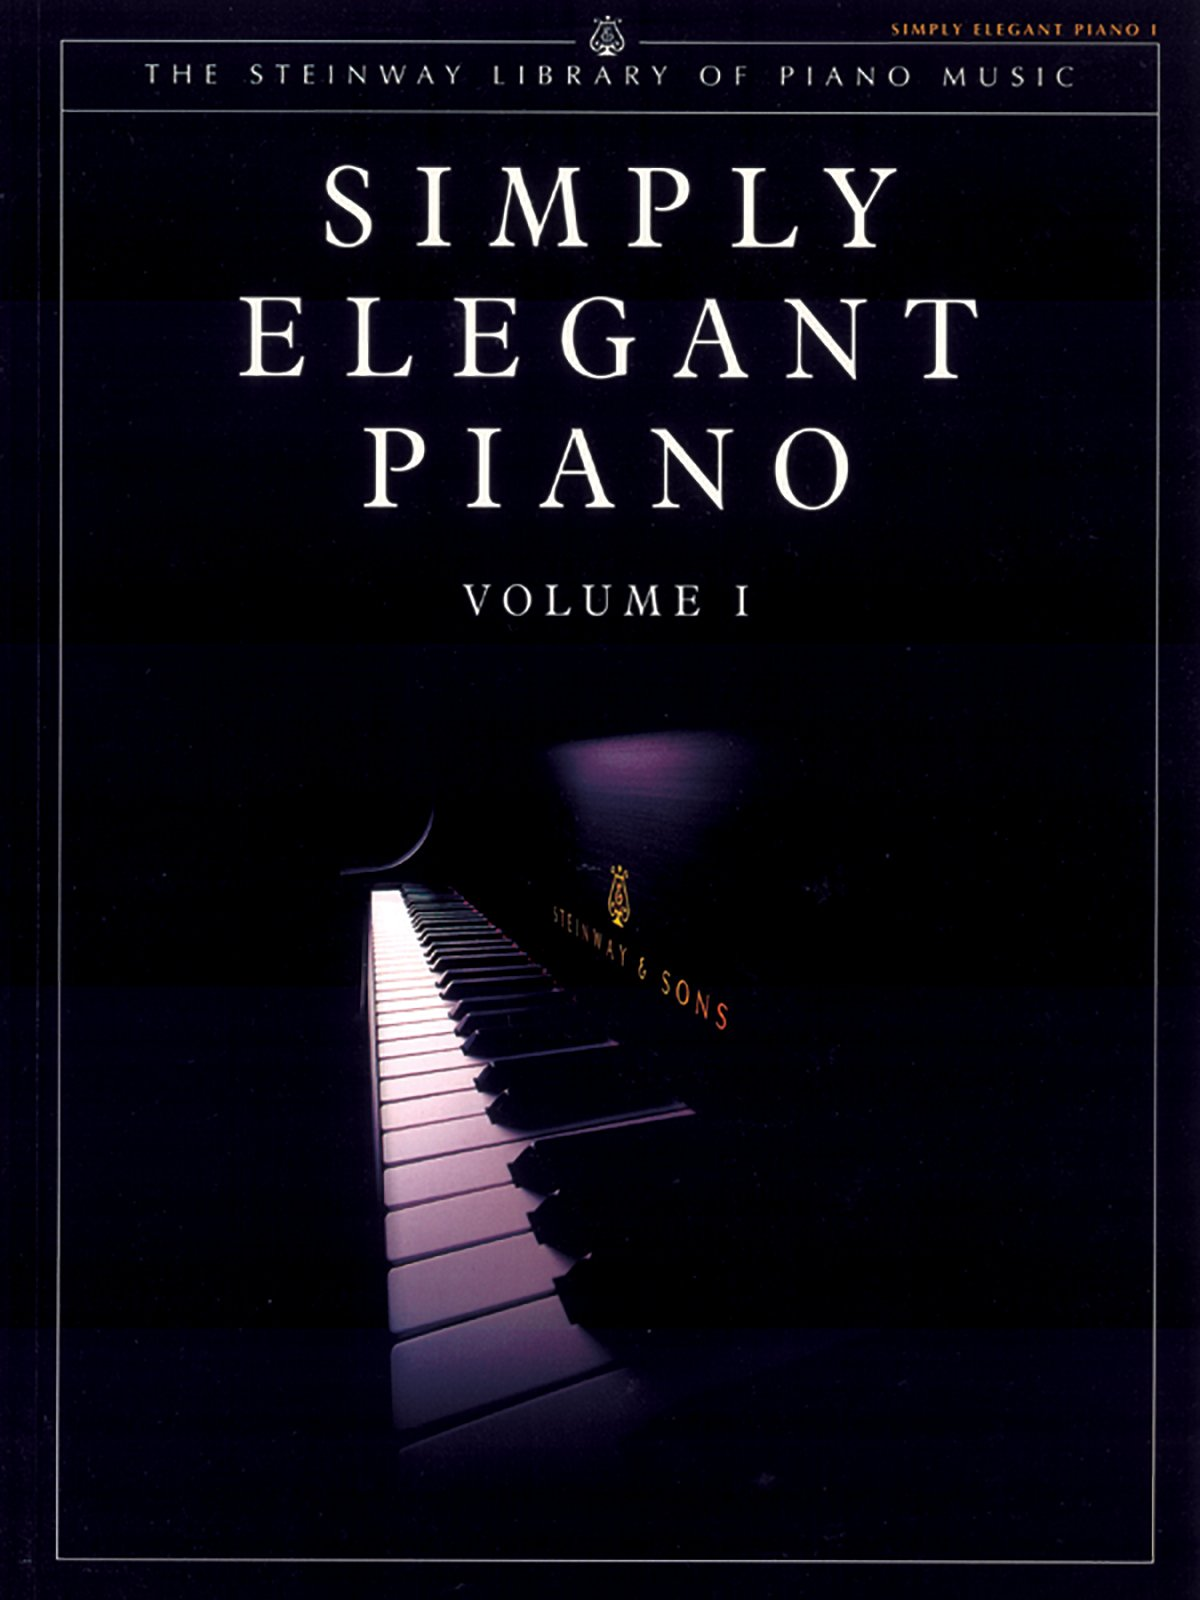 SIMPLY ELEGANT PIANO Introductory Volume Steinway